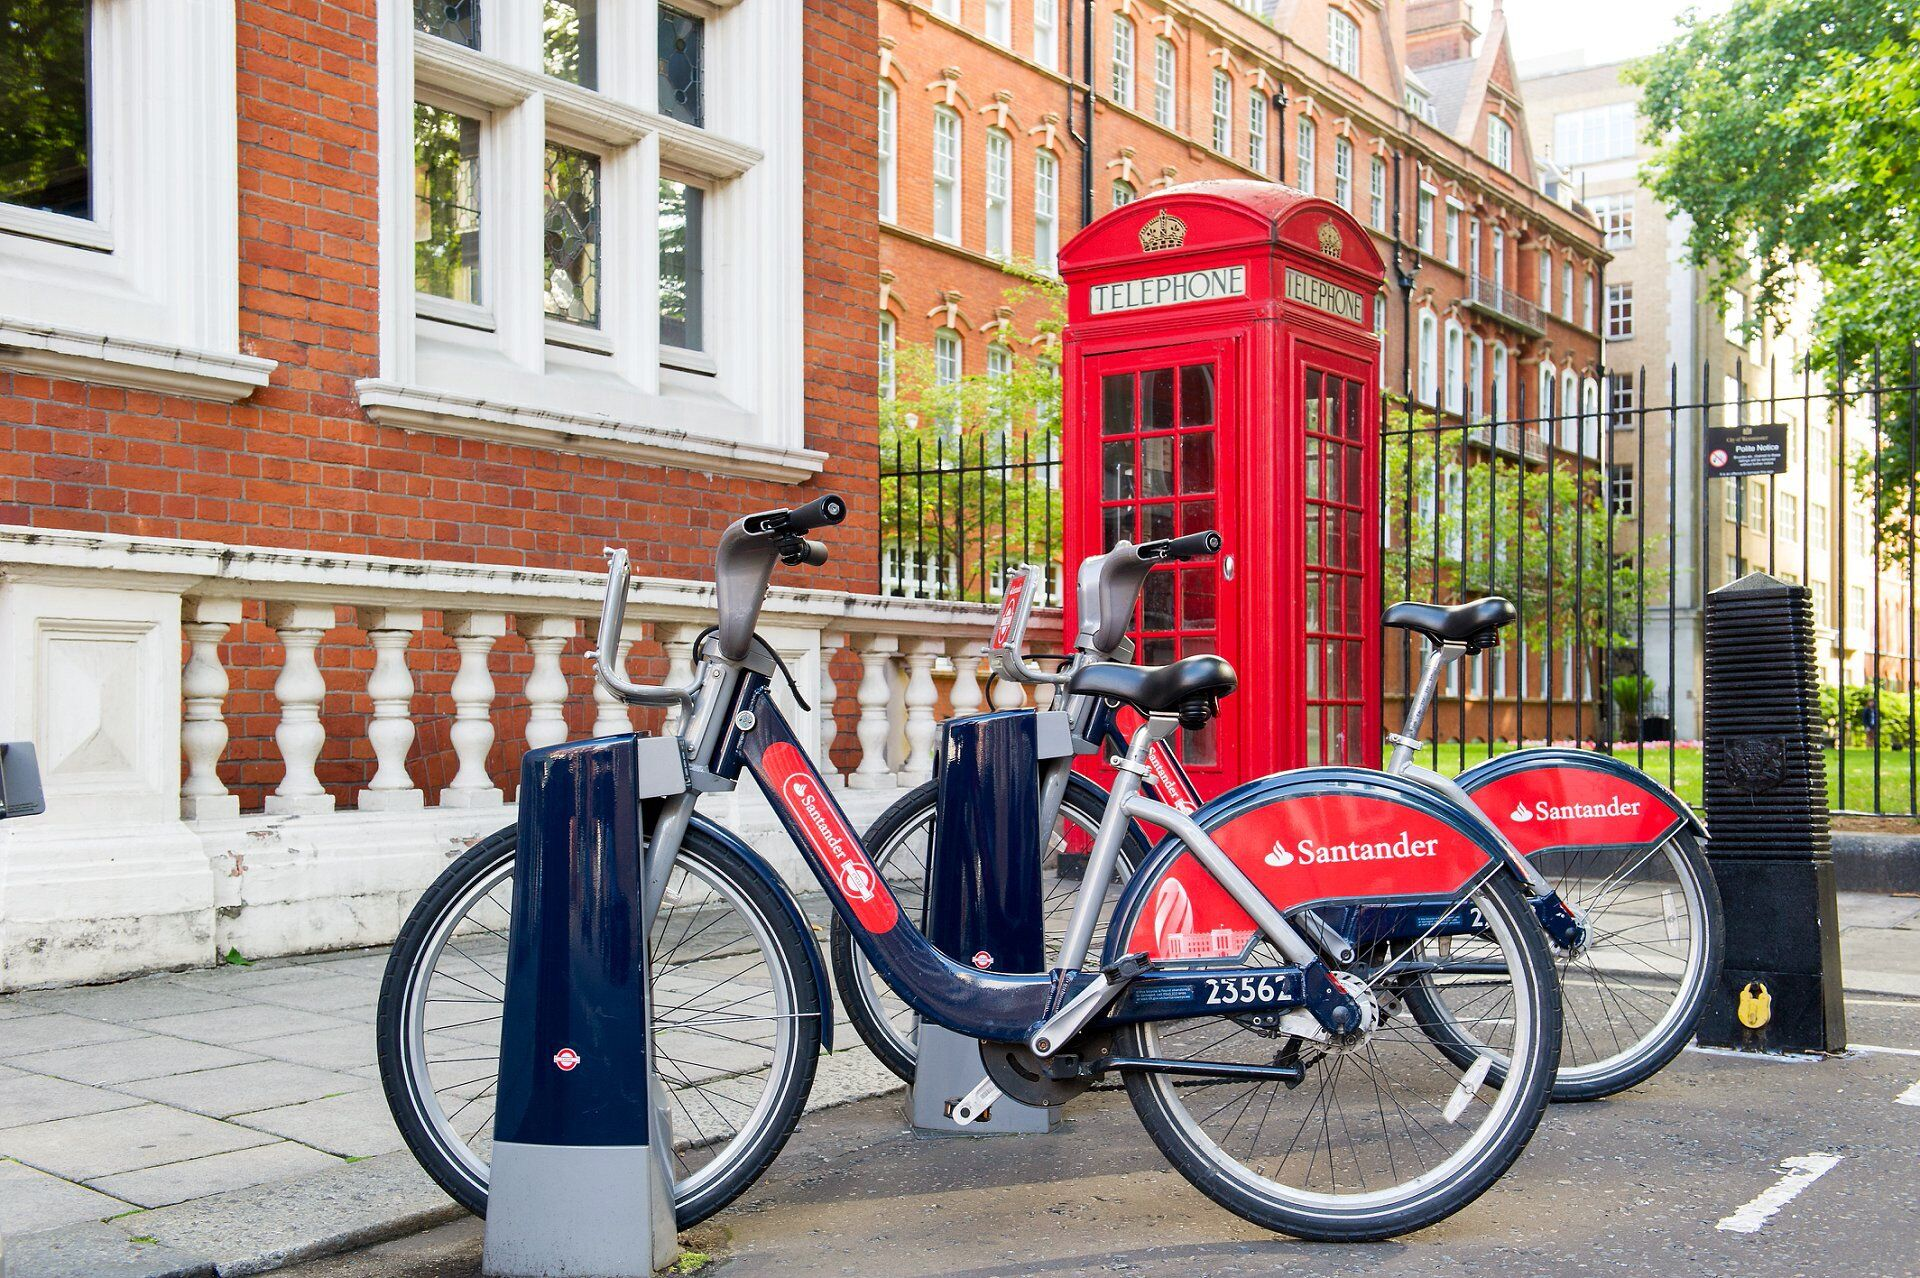 santander bicycles london and red telephone box outside mayfair library westminster